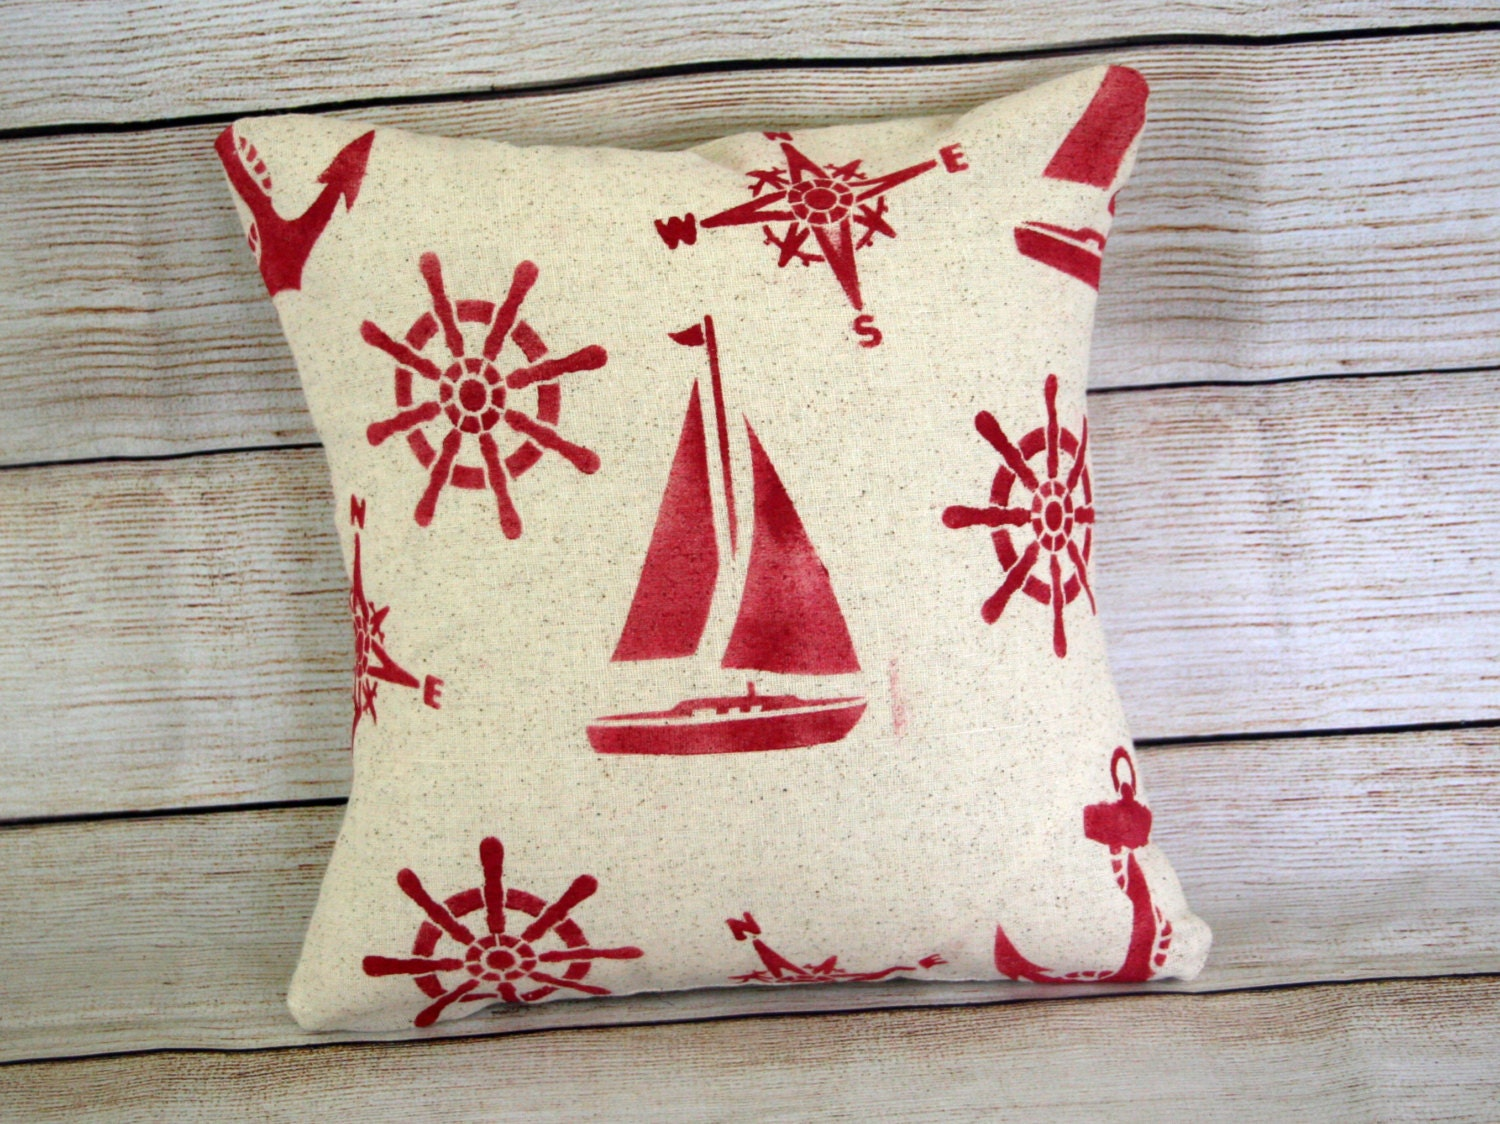 Red Throw Pillows Etsy : Nautical Throw Pillow Red by BoxwoodBoutique on Etsy